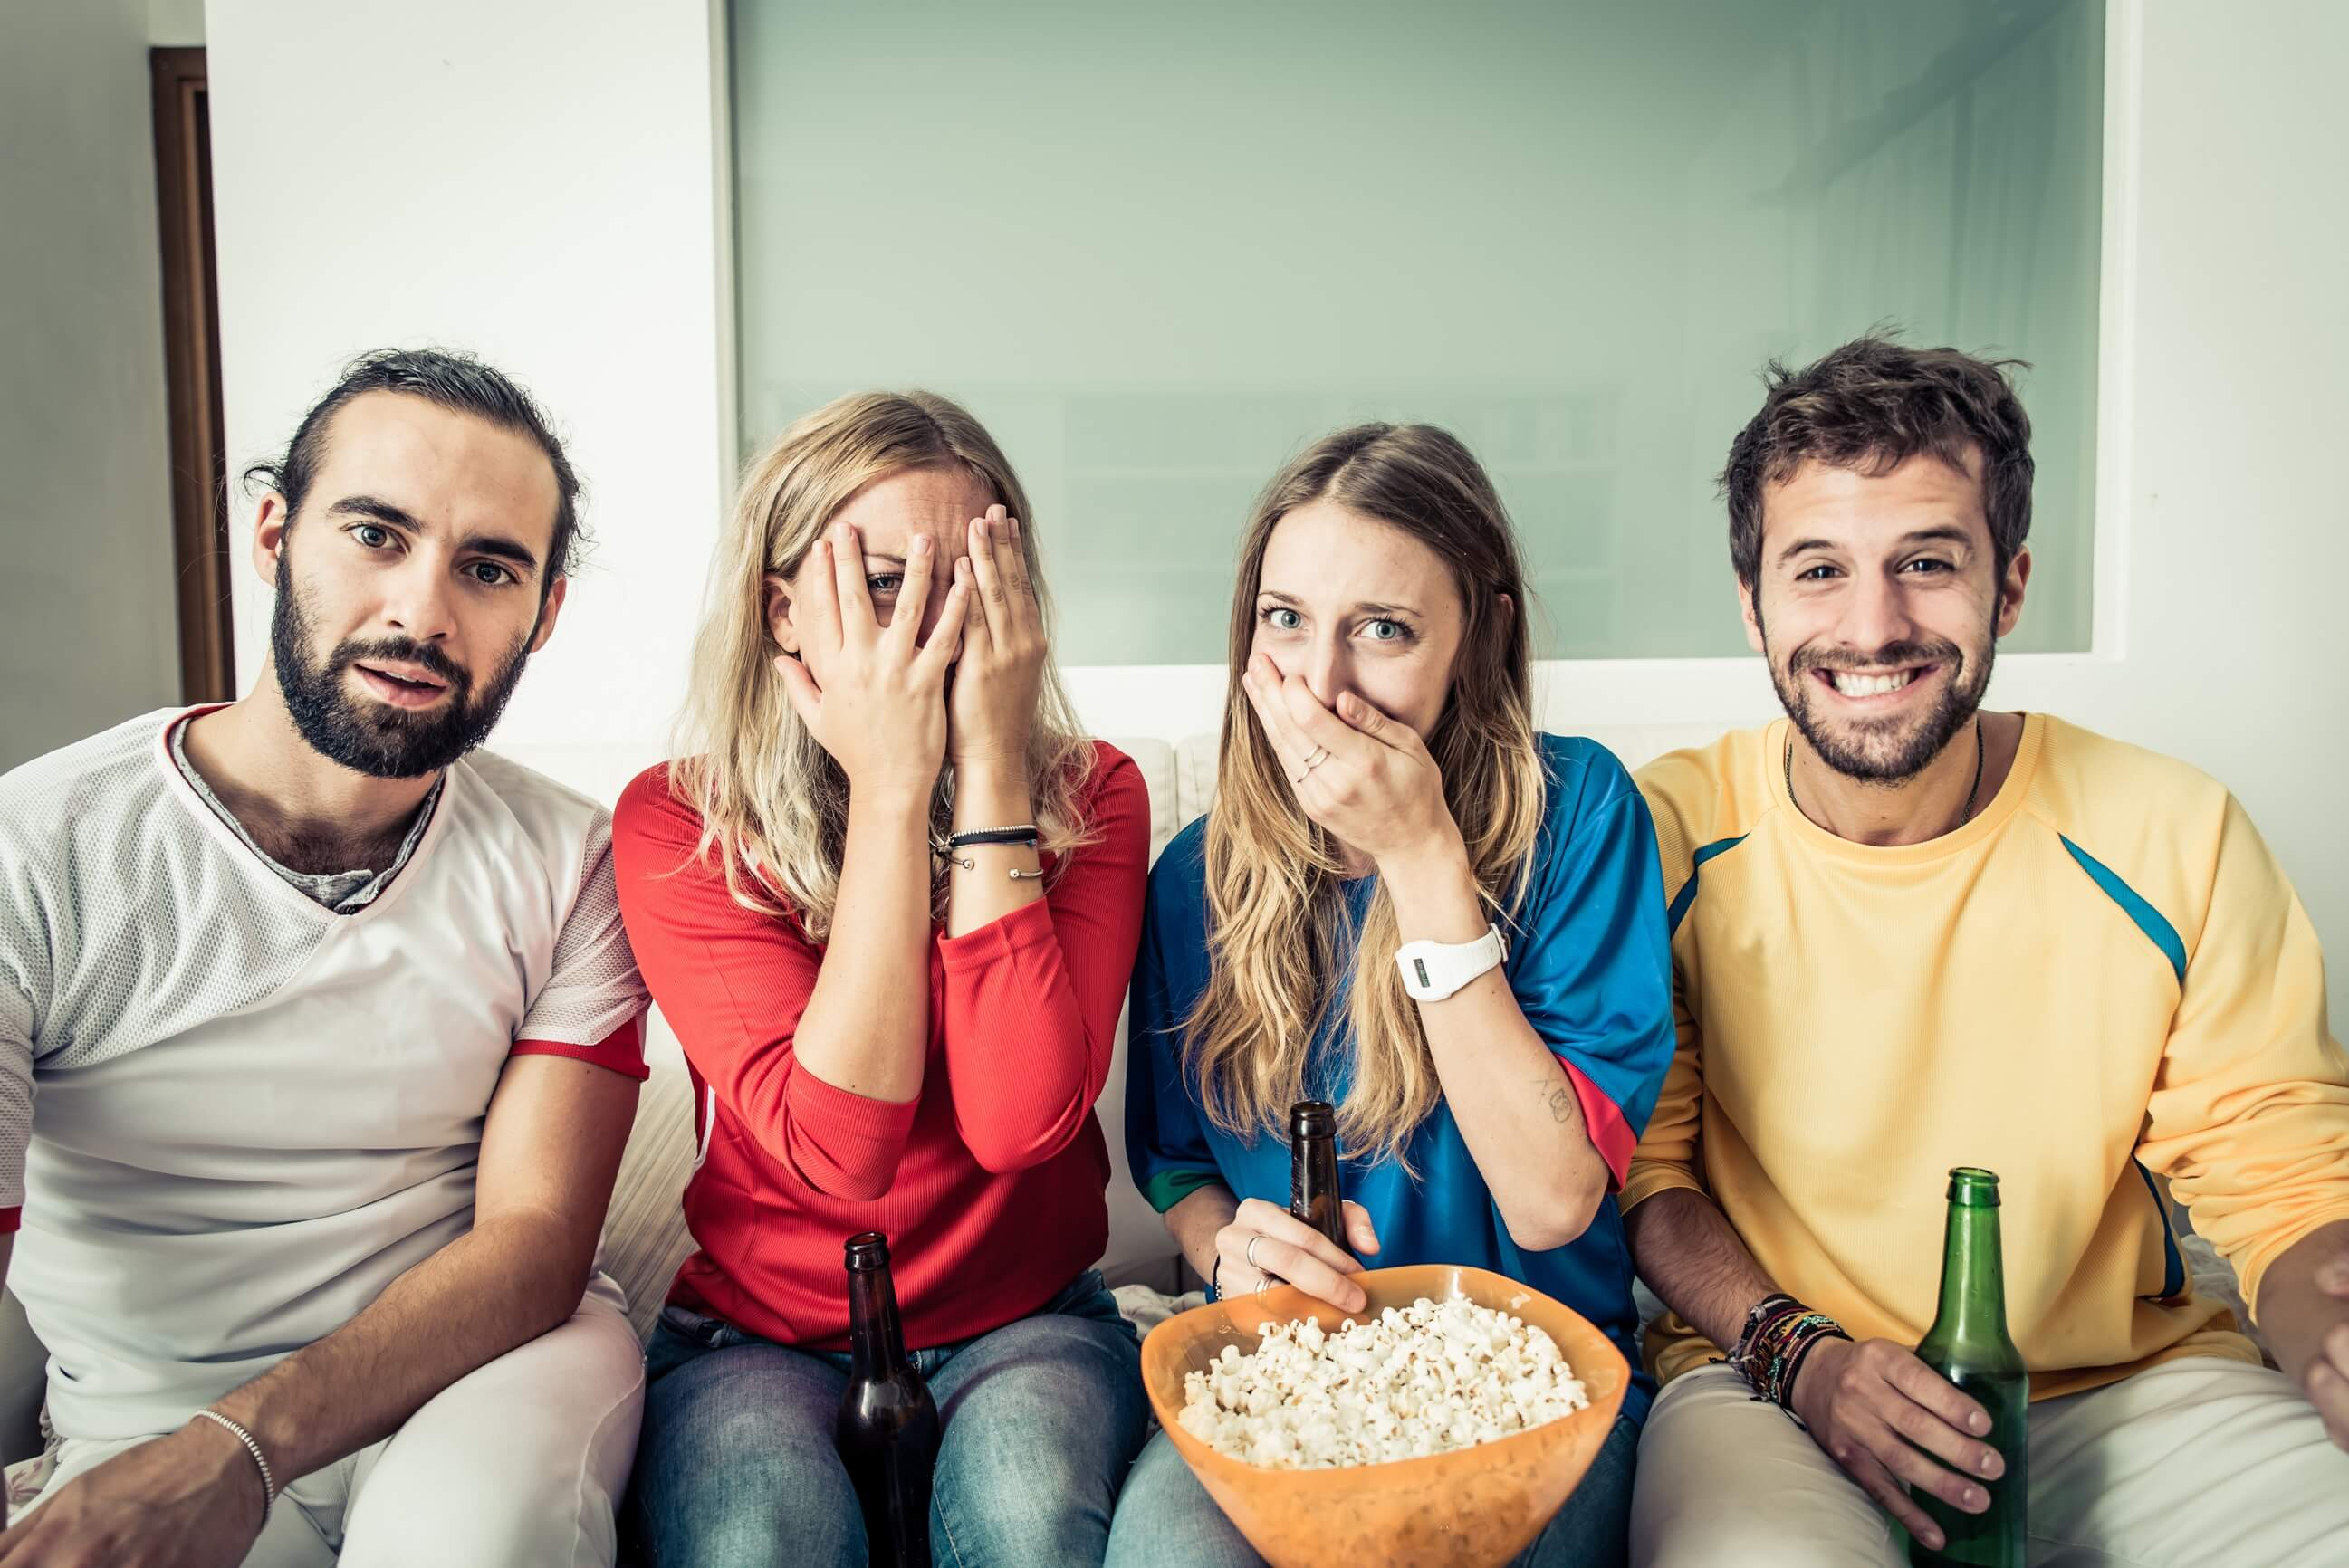 How To Watch Netflix With Friends Anywhere And No Its Not Illegal